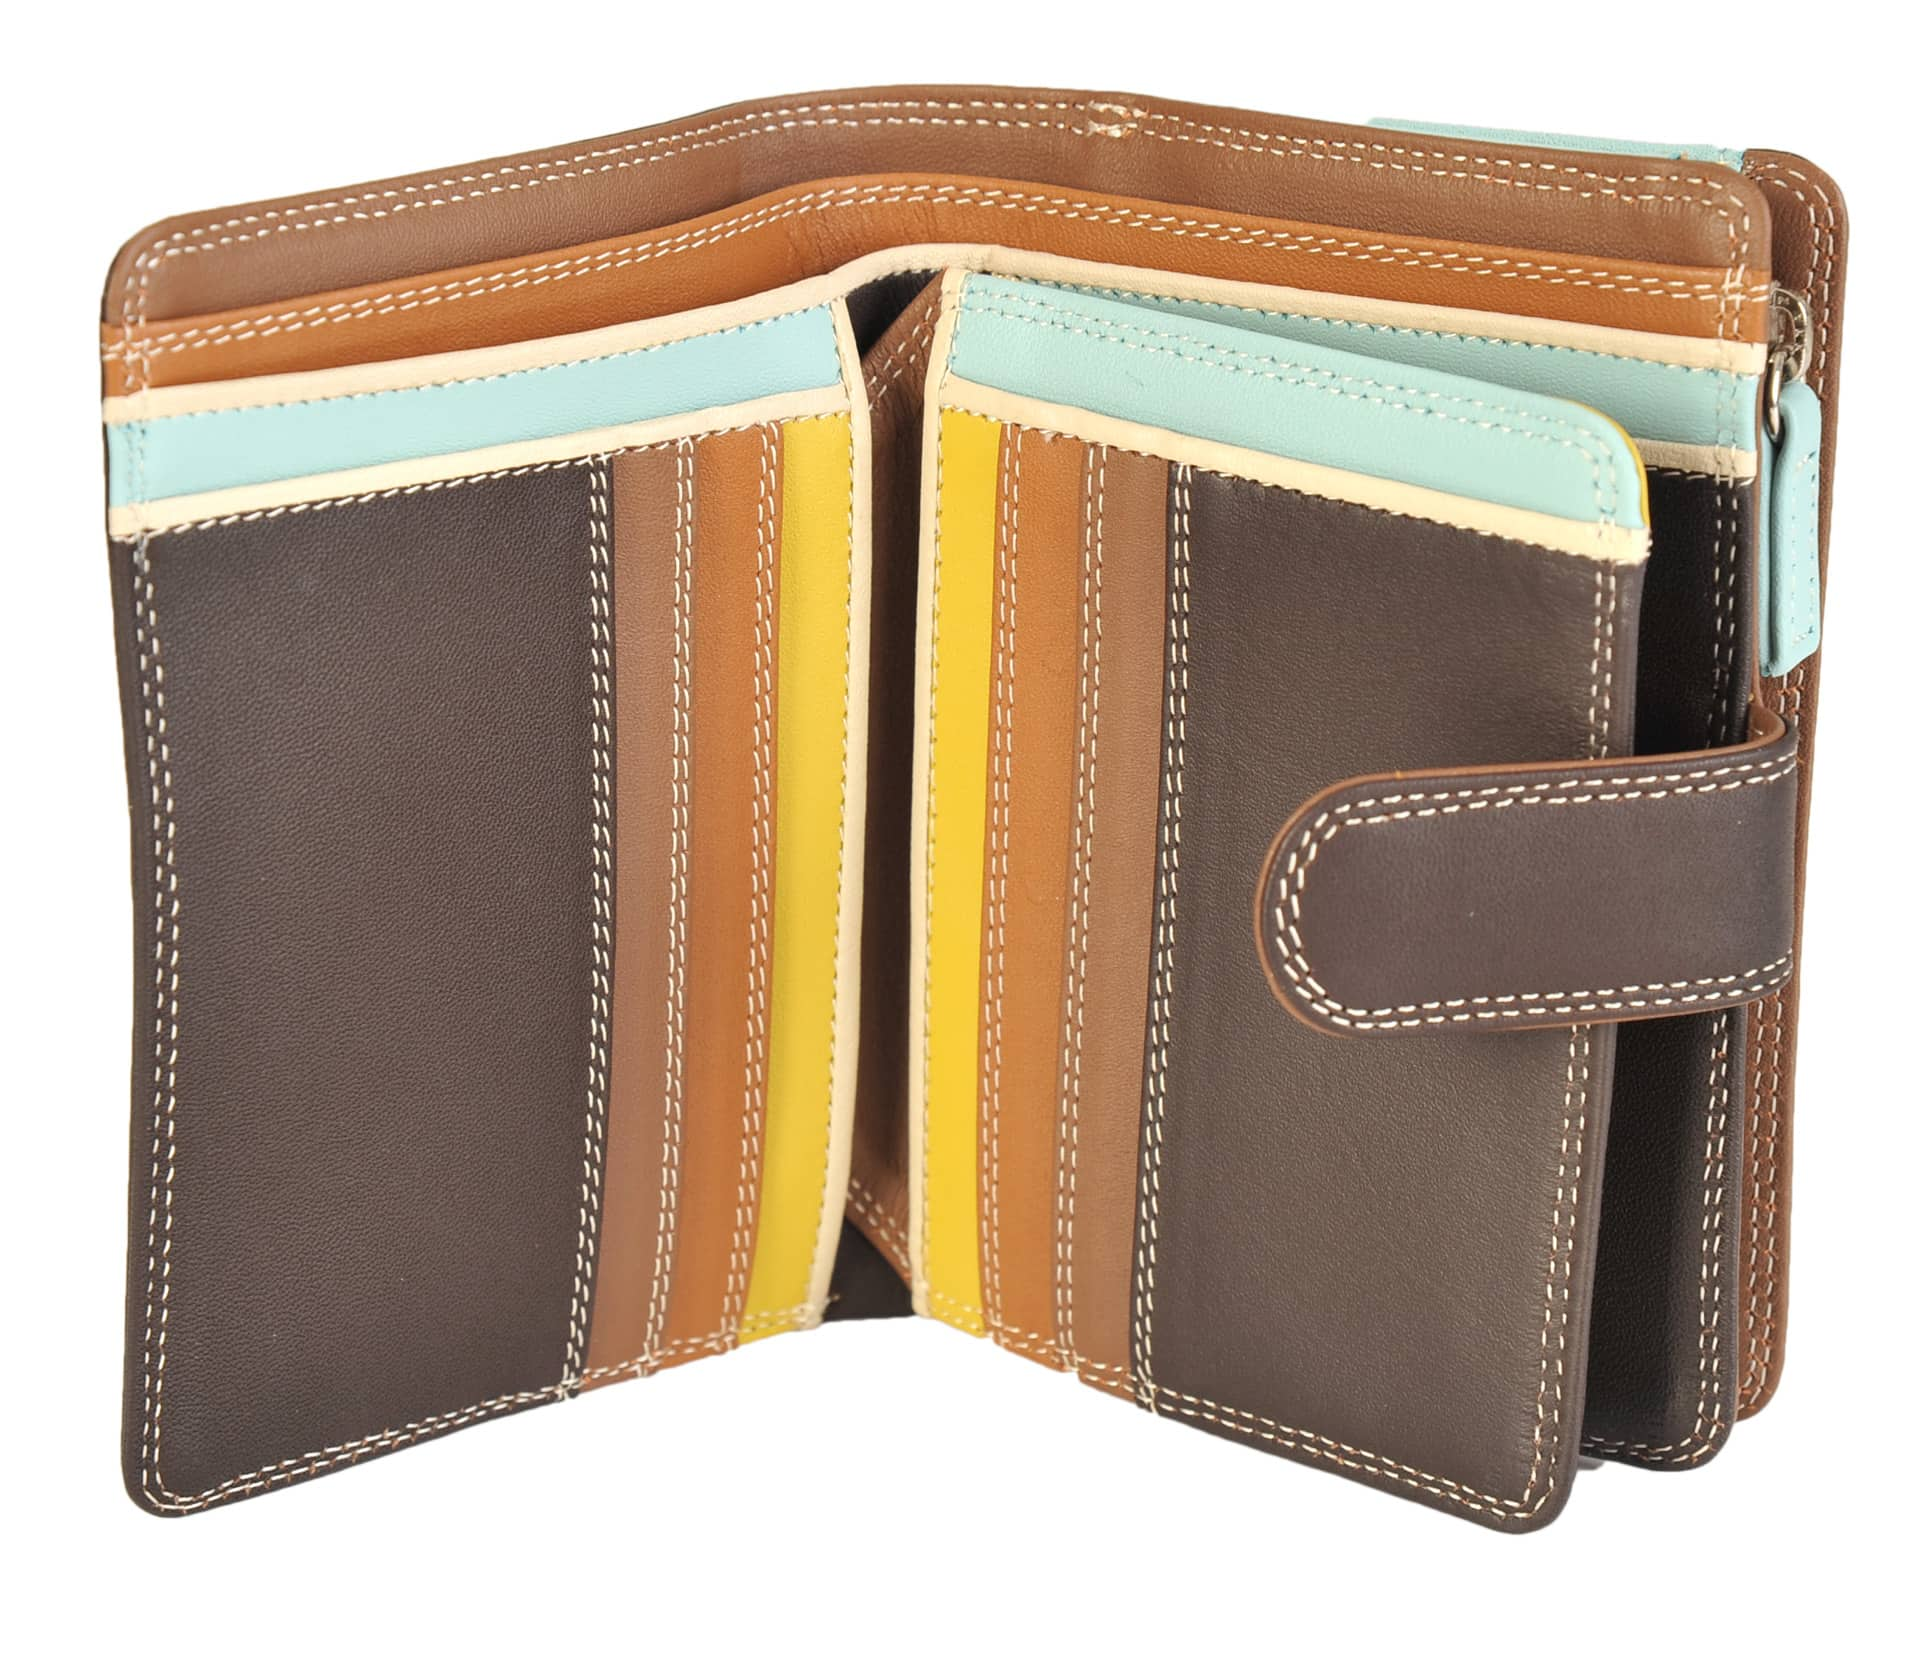 aacf0bfe5b10 Mywalit Medium Leather 9 Card Tab Wallet With Zip Purse 390 - David ...